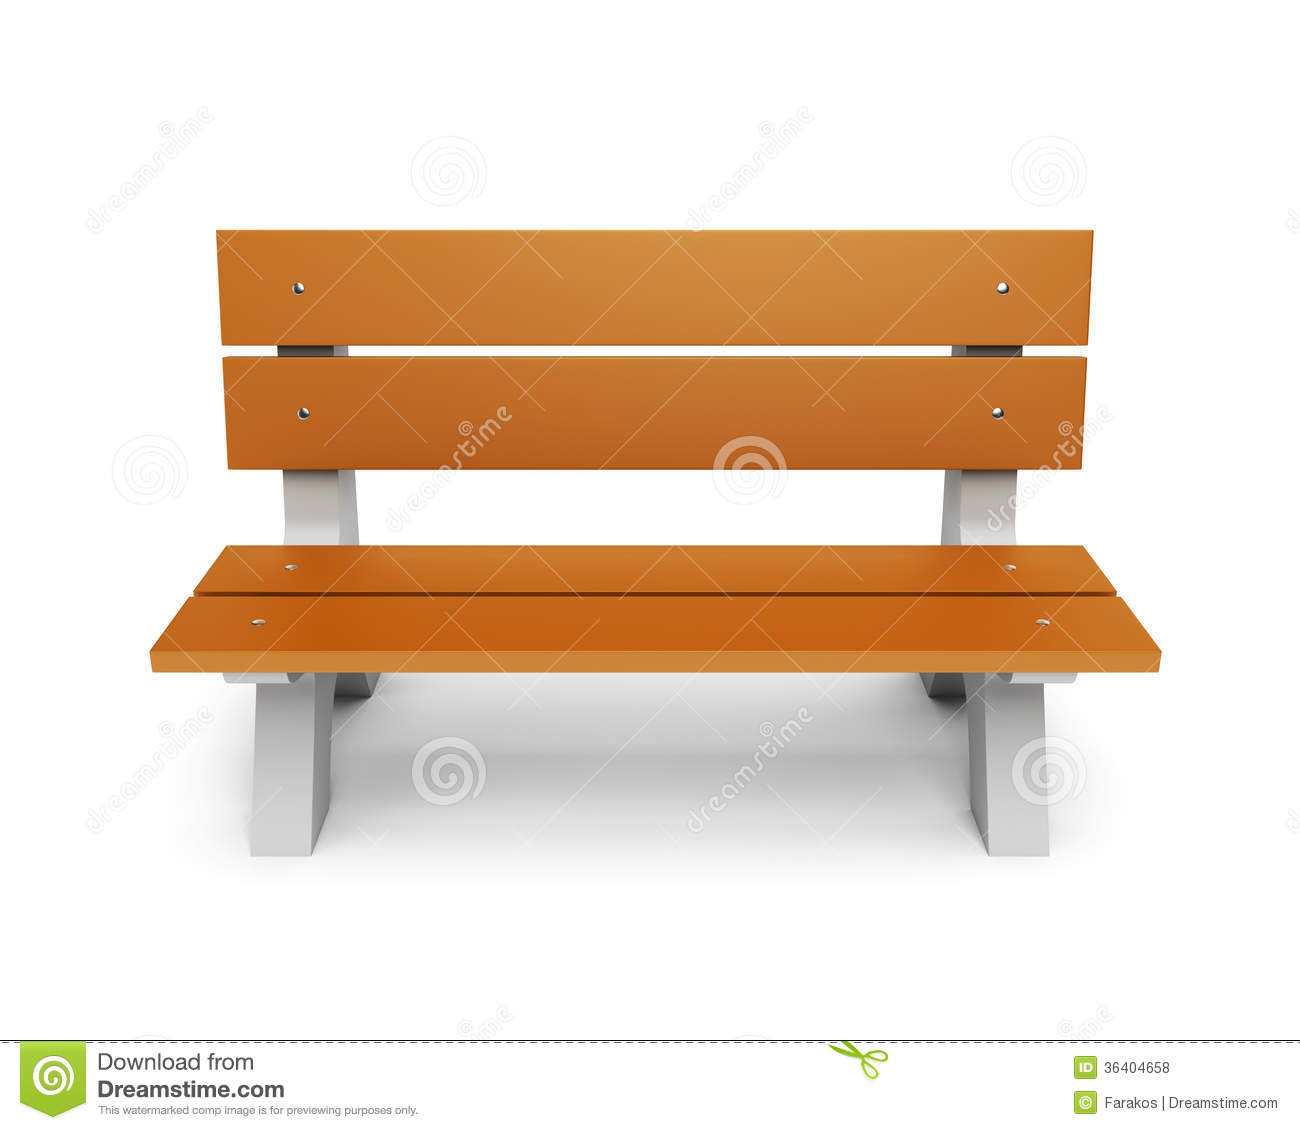 Park bench clipart free.